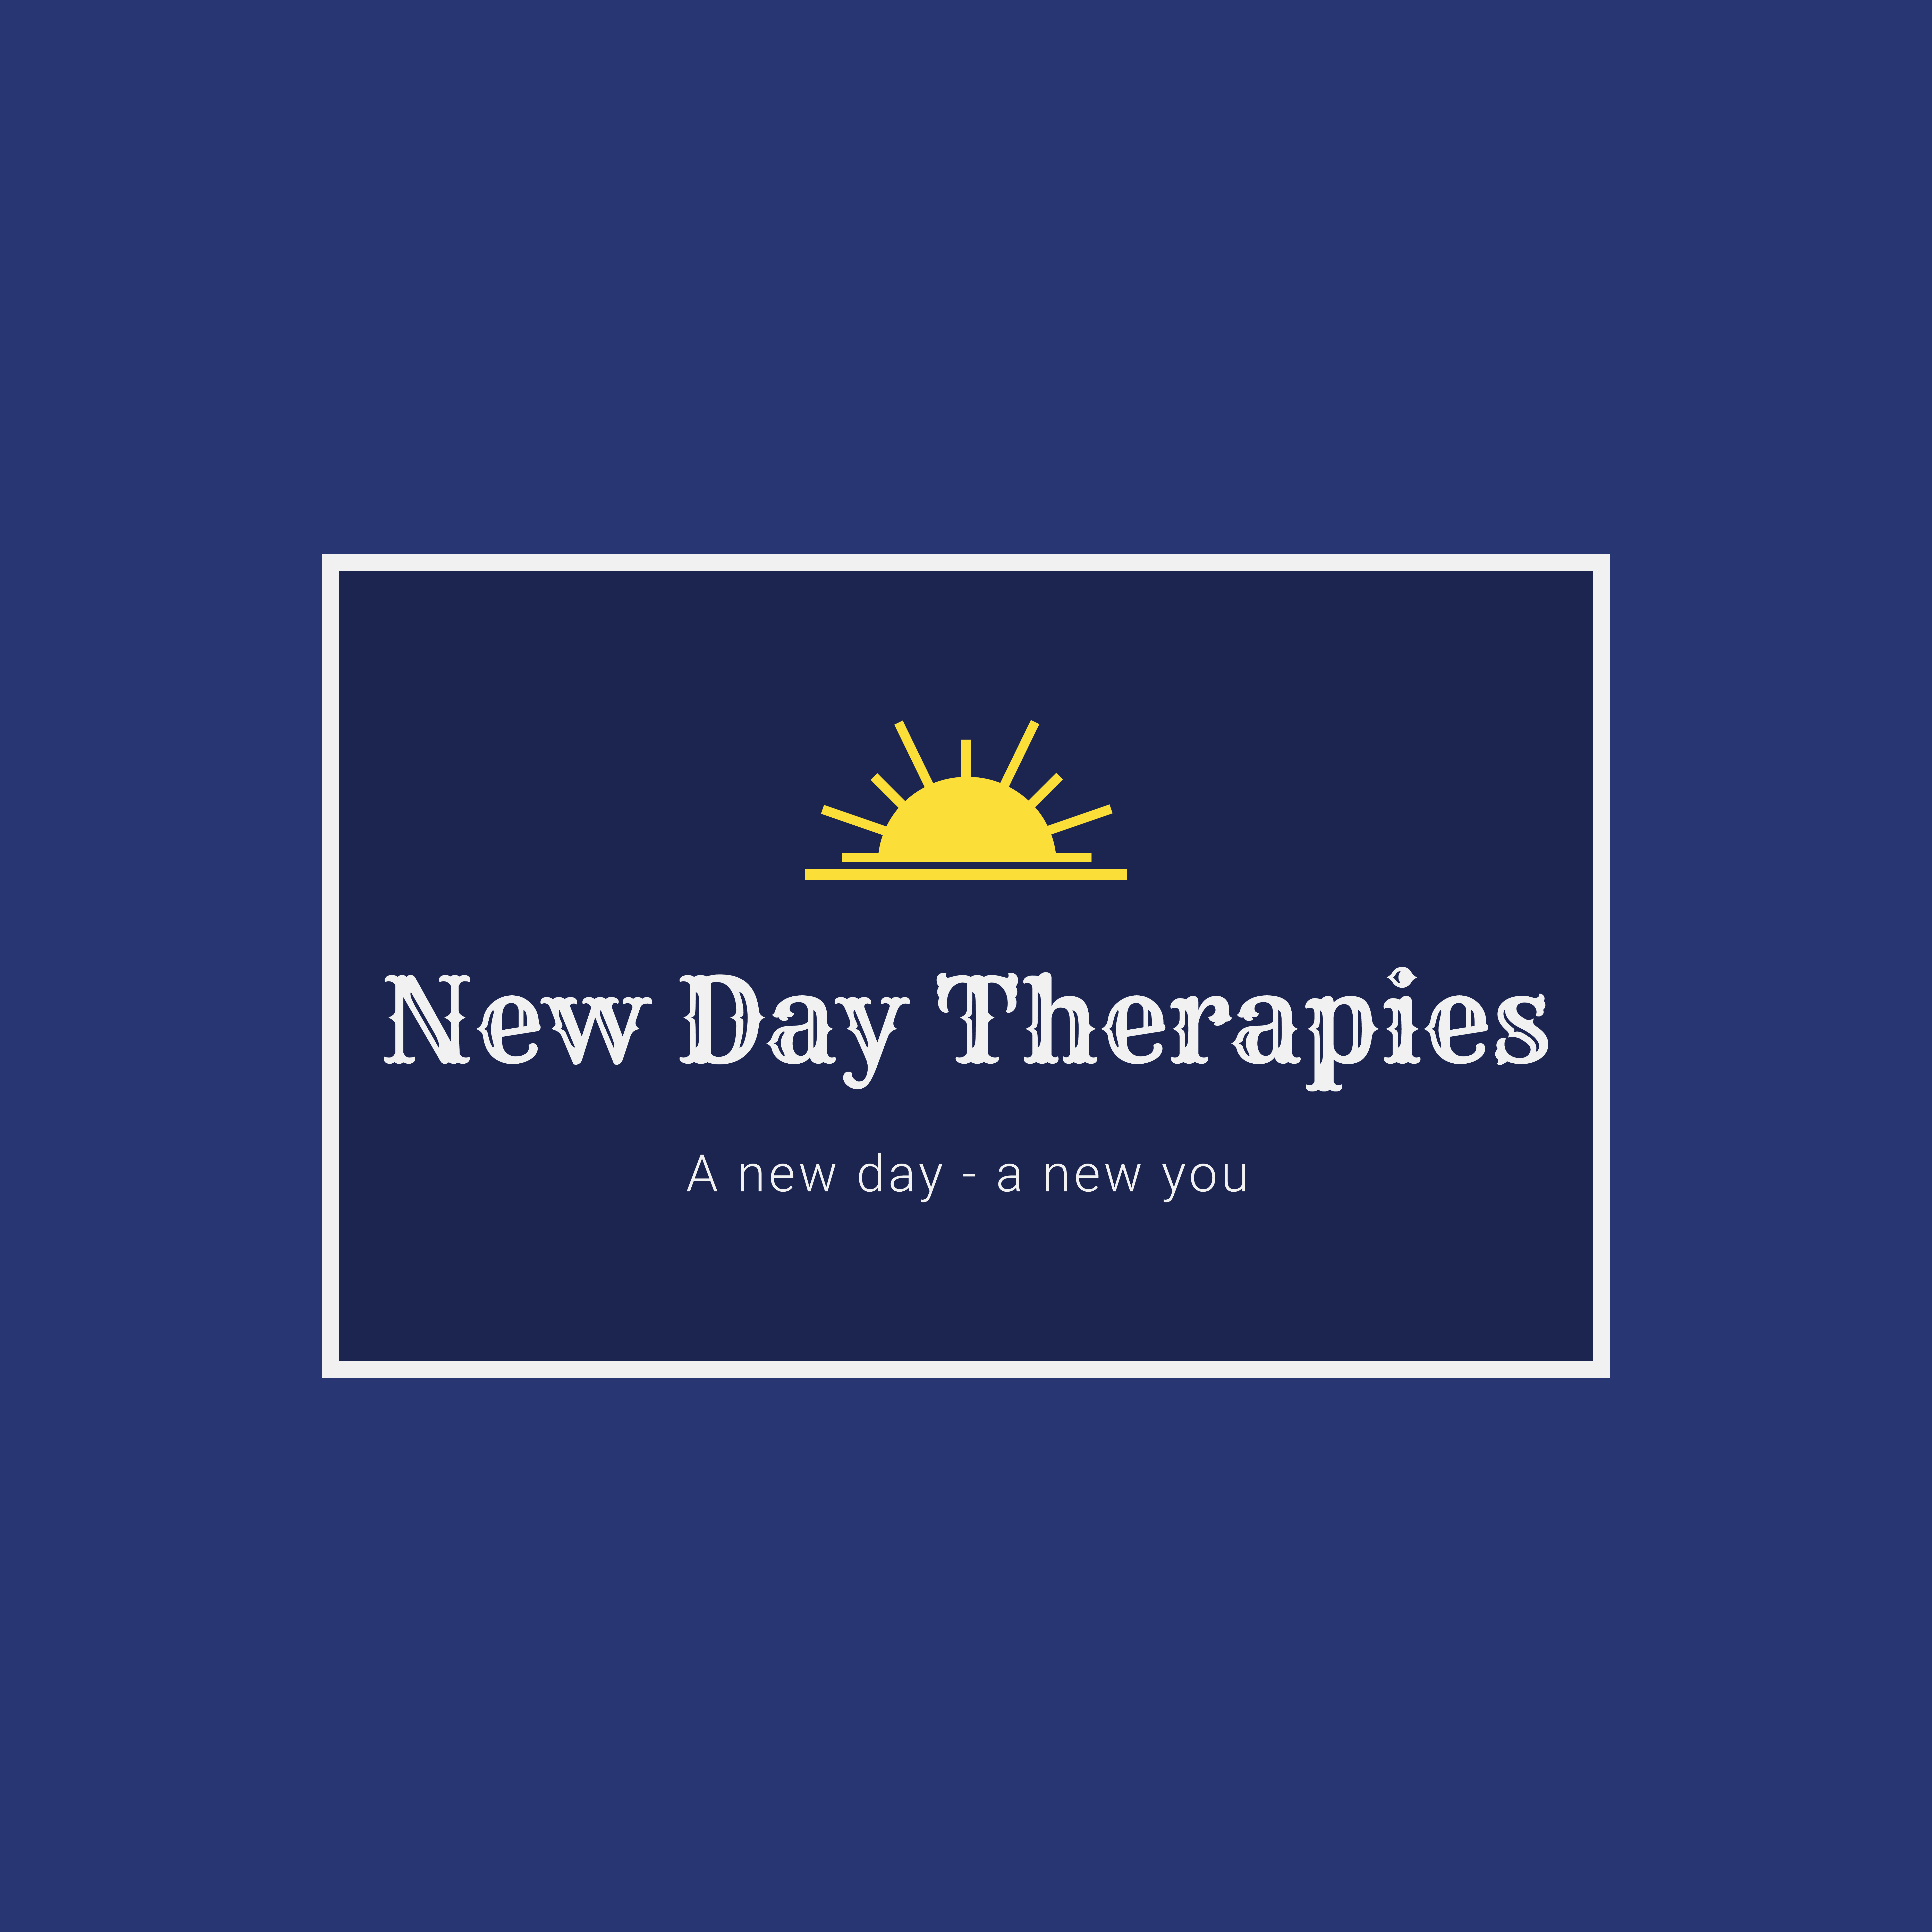 New Day Therapies